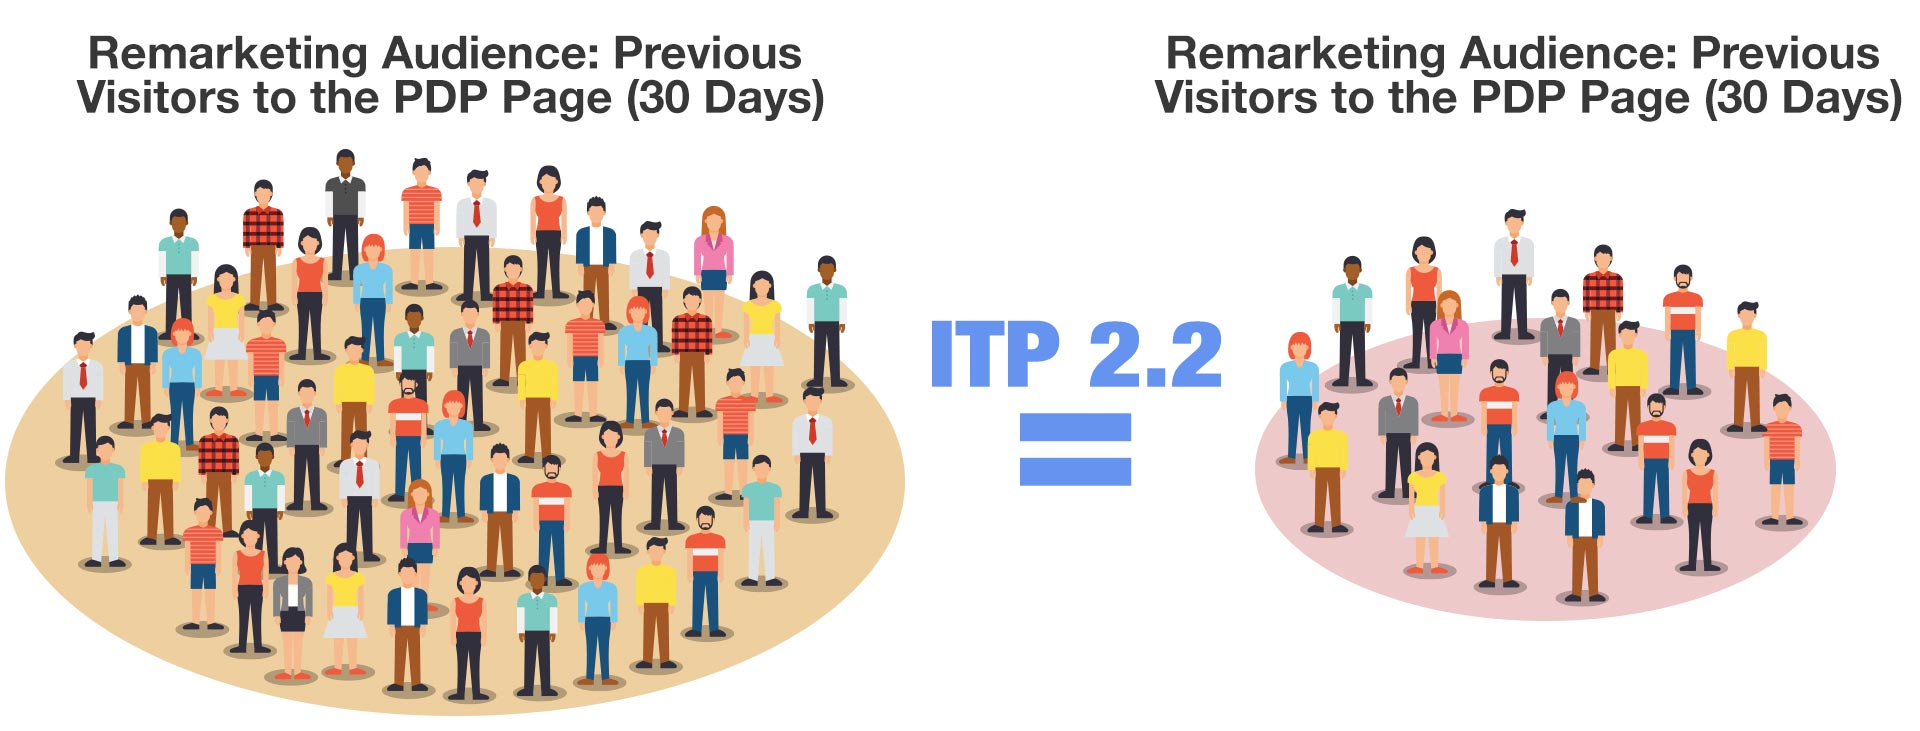 itp 2.2 affect on marketing channels